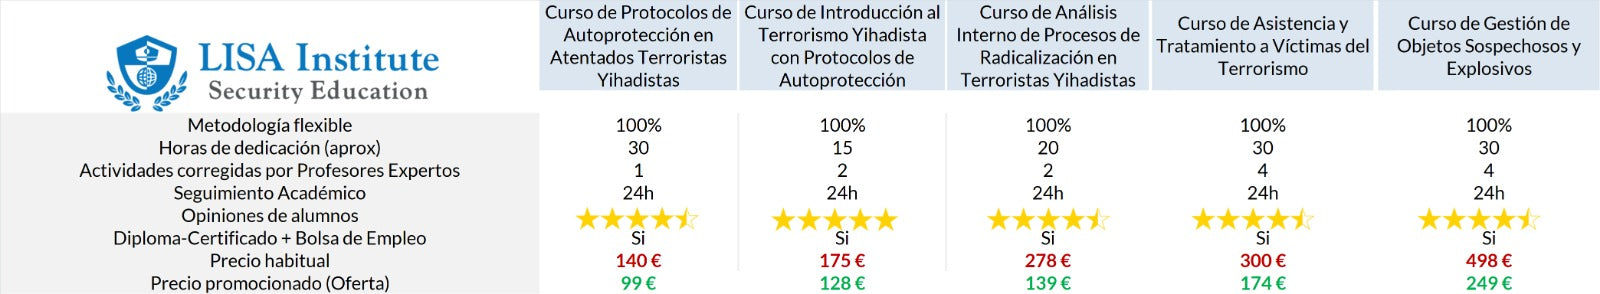 Comparativa Cursos de Terrorismo LISA Institute